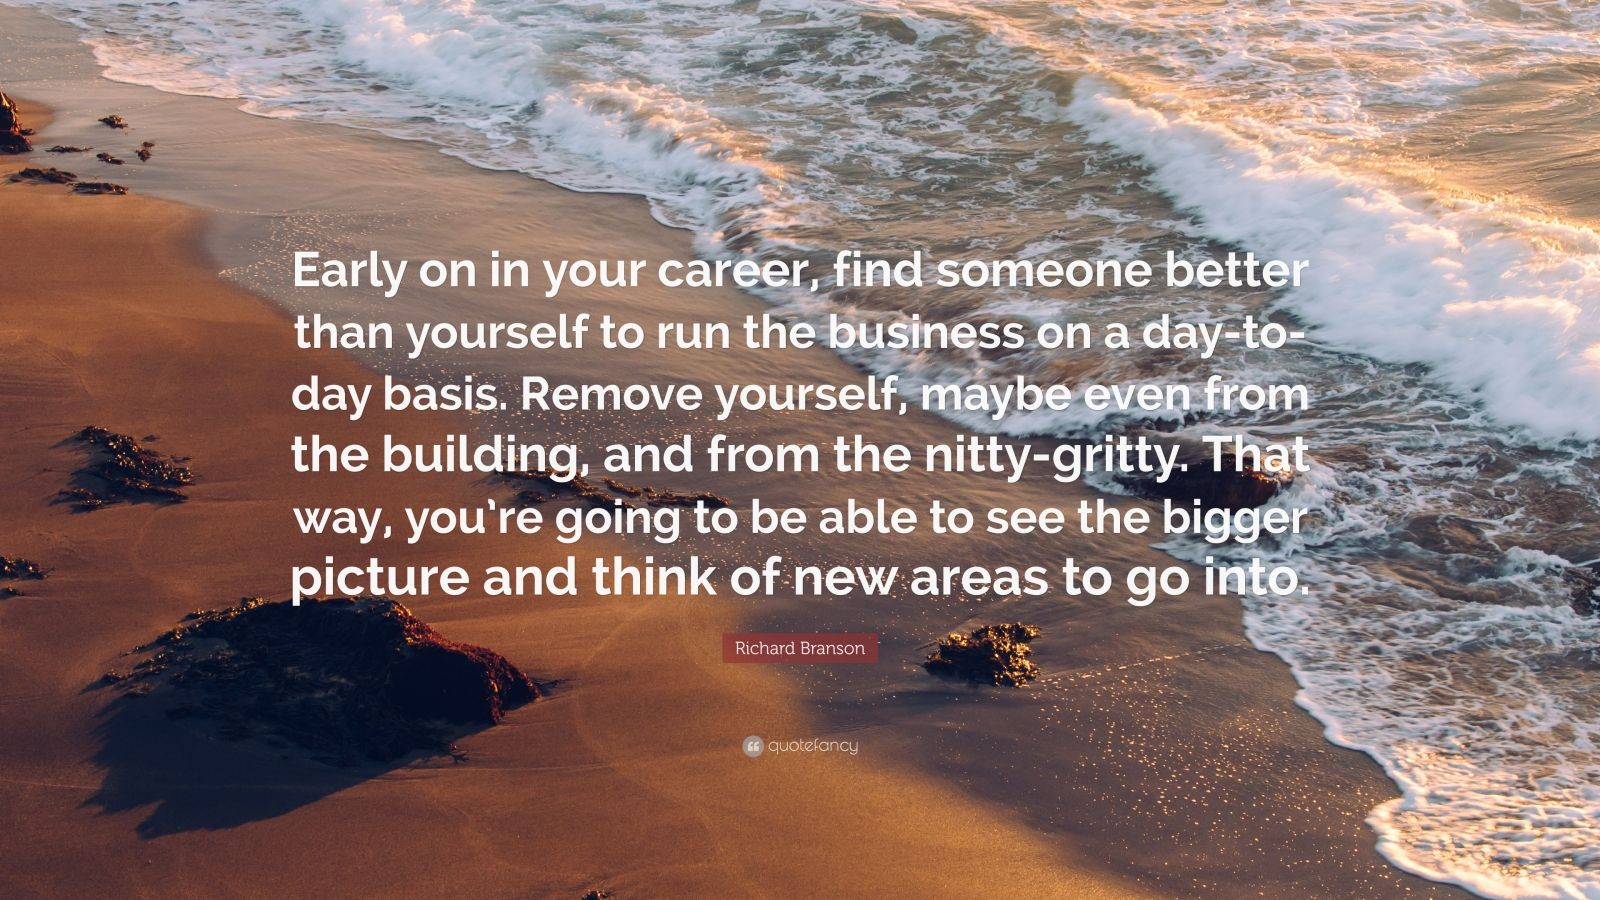 """Richard Branson Quote: """"Early on in your career, find someone better than yourself to run the business on a day-to-day basis. Remove yourself, maybe even from the building, and from the nitty-gritty. That way, you're going to be able to see the bigger picture and think of new areas to go into."""""""